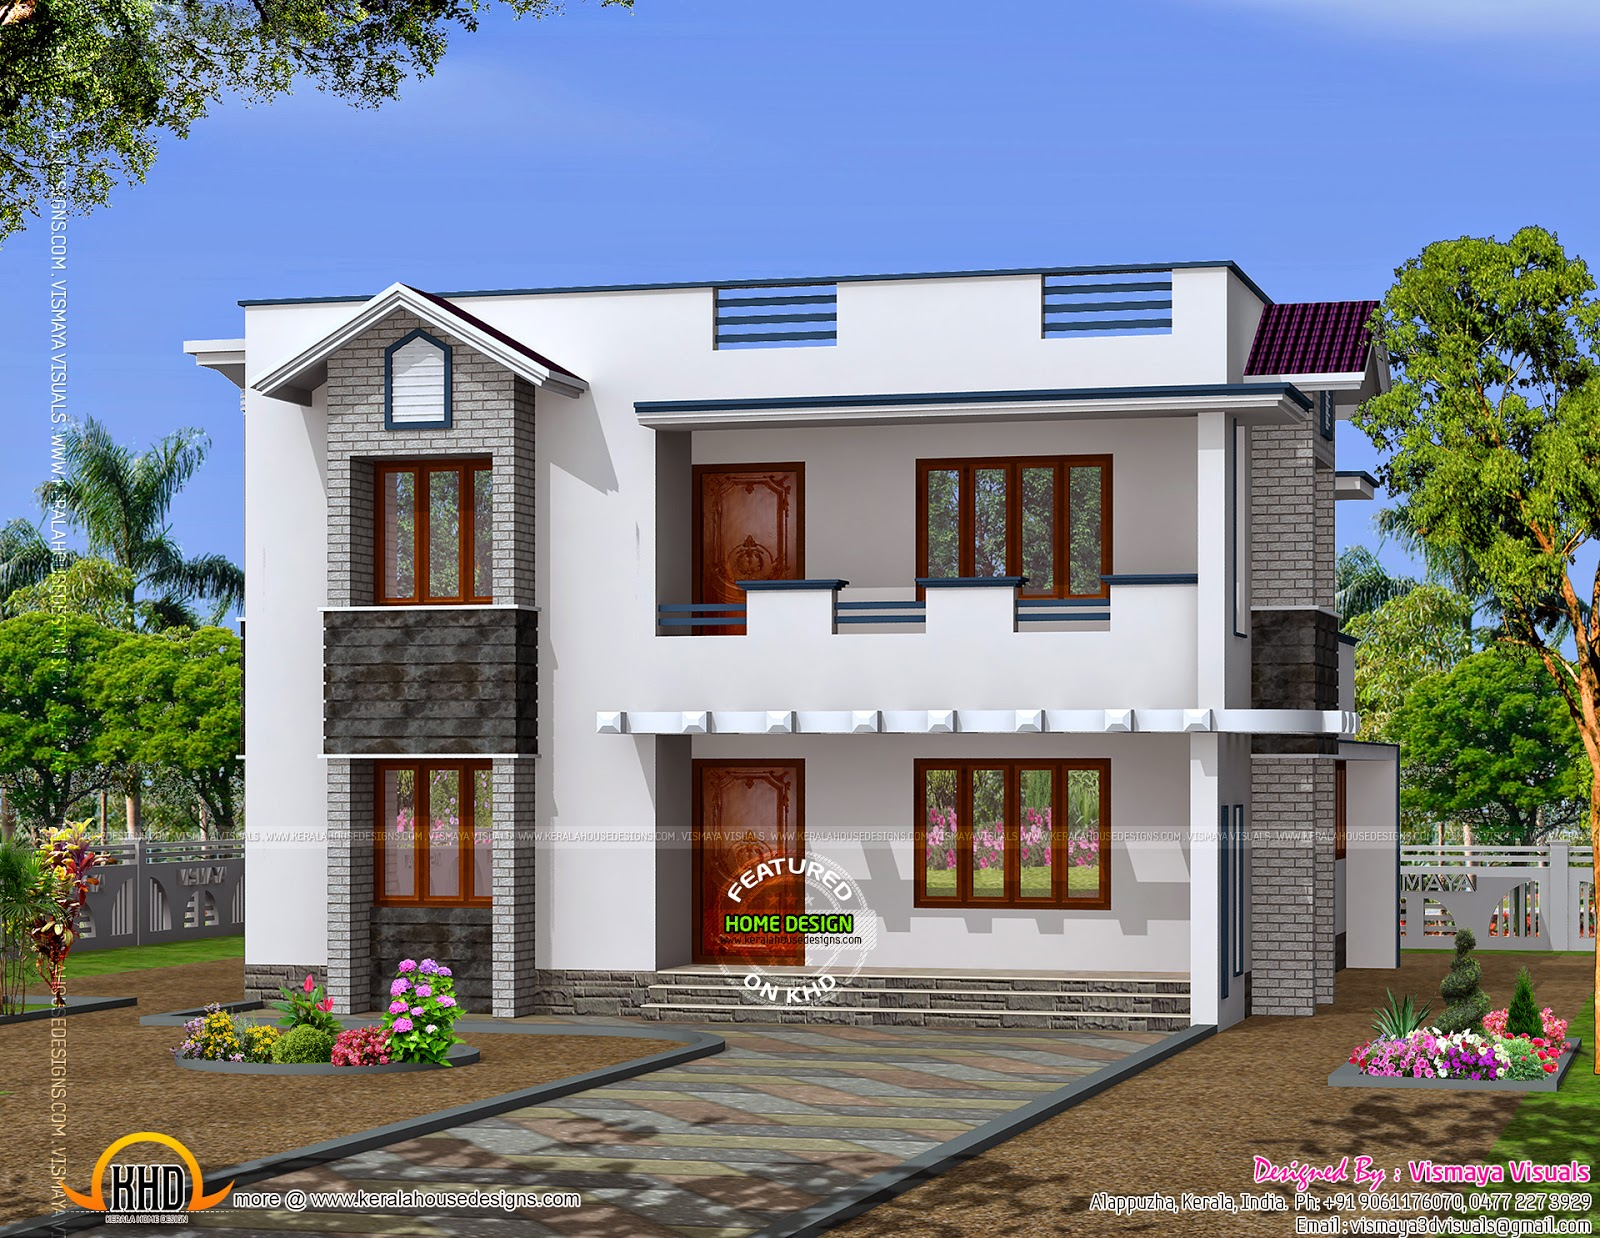 Simple design home - Kerala home design and floor plans ...